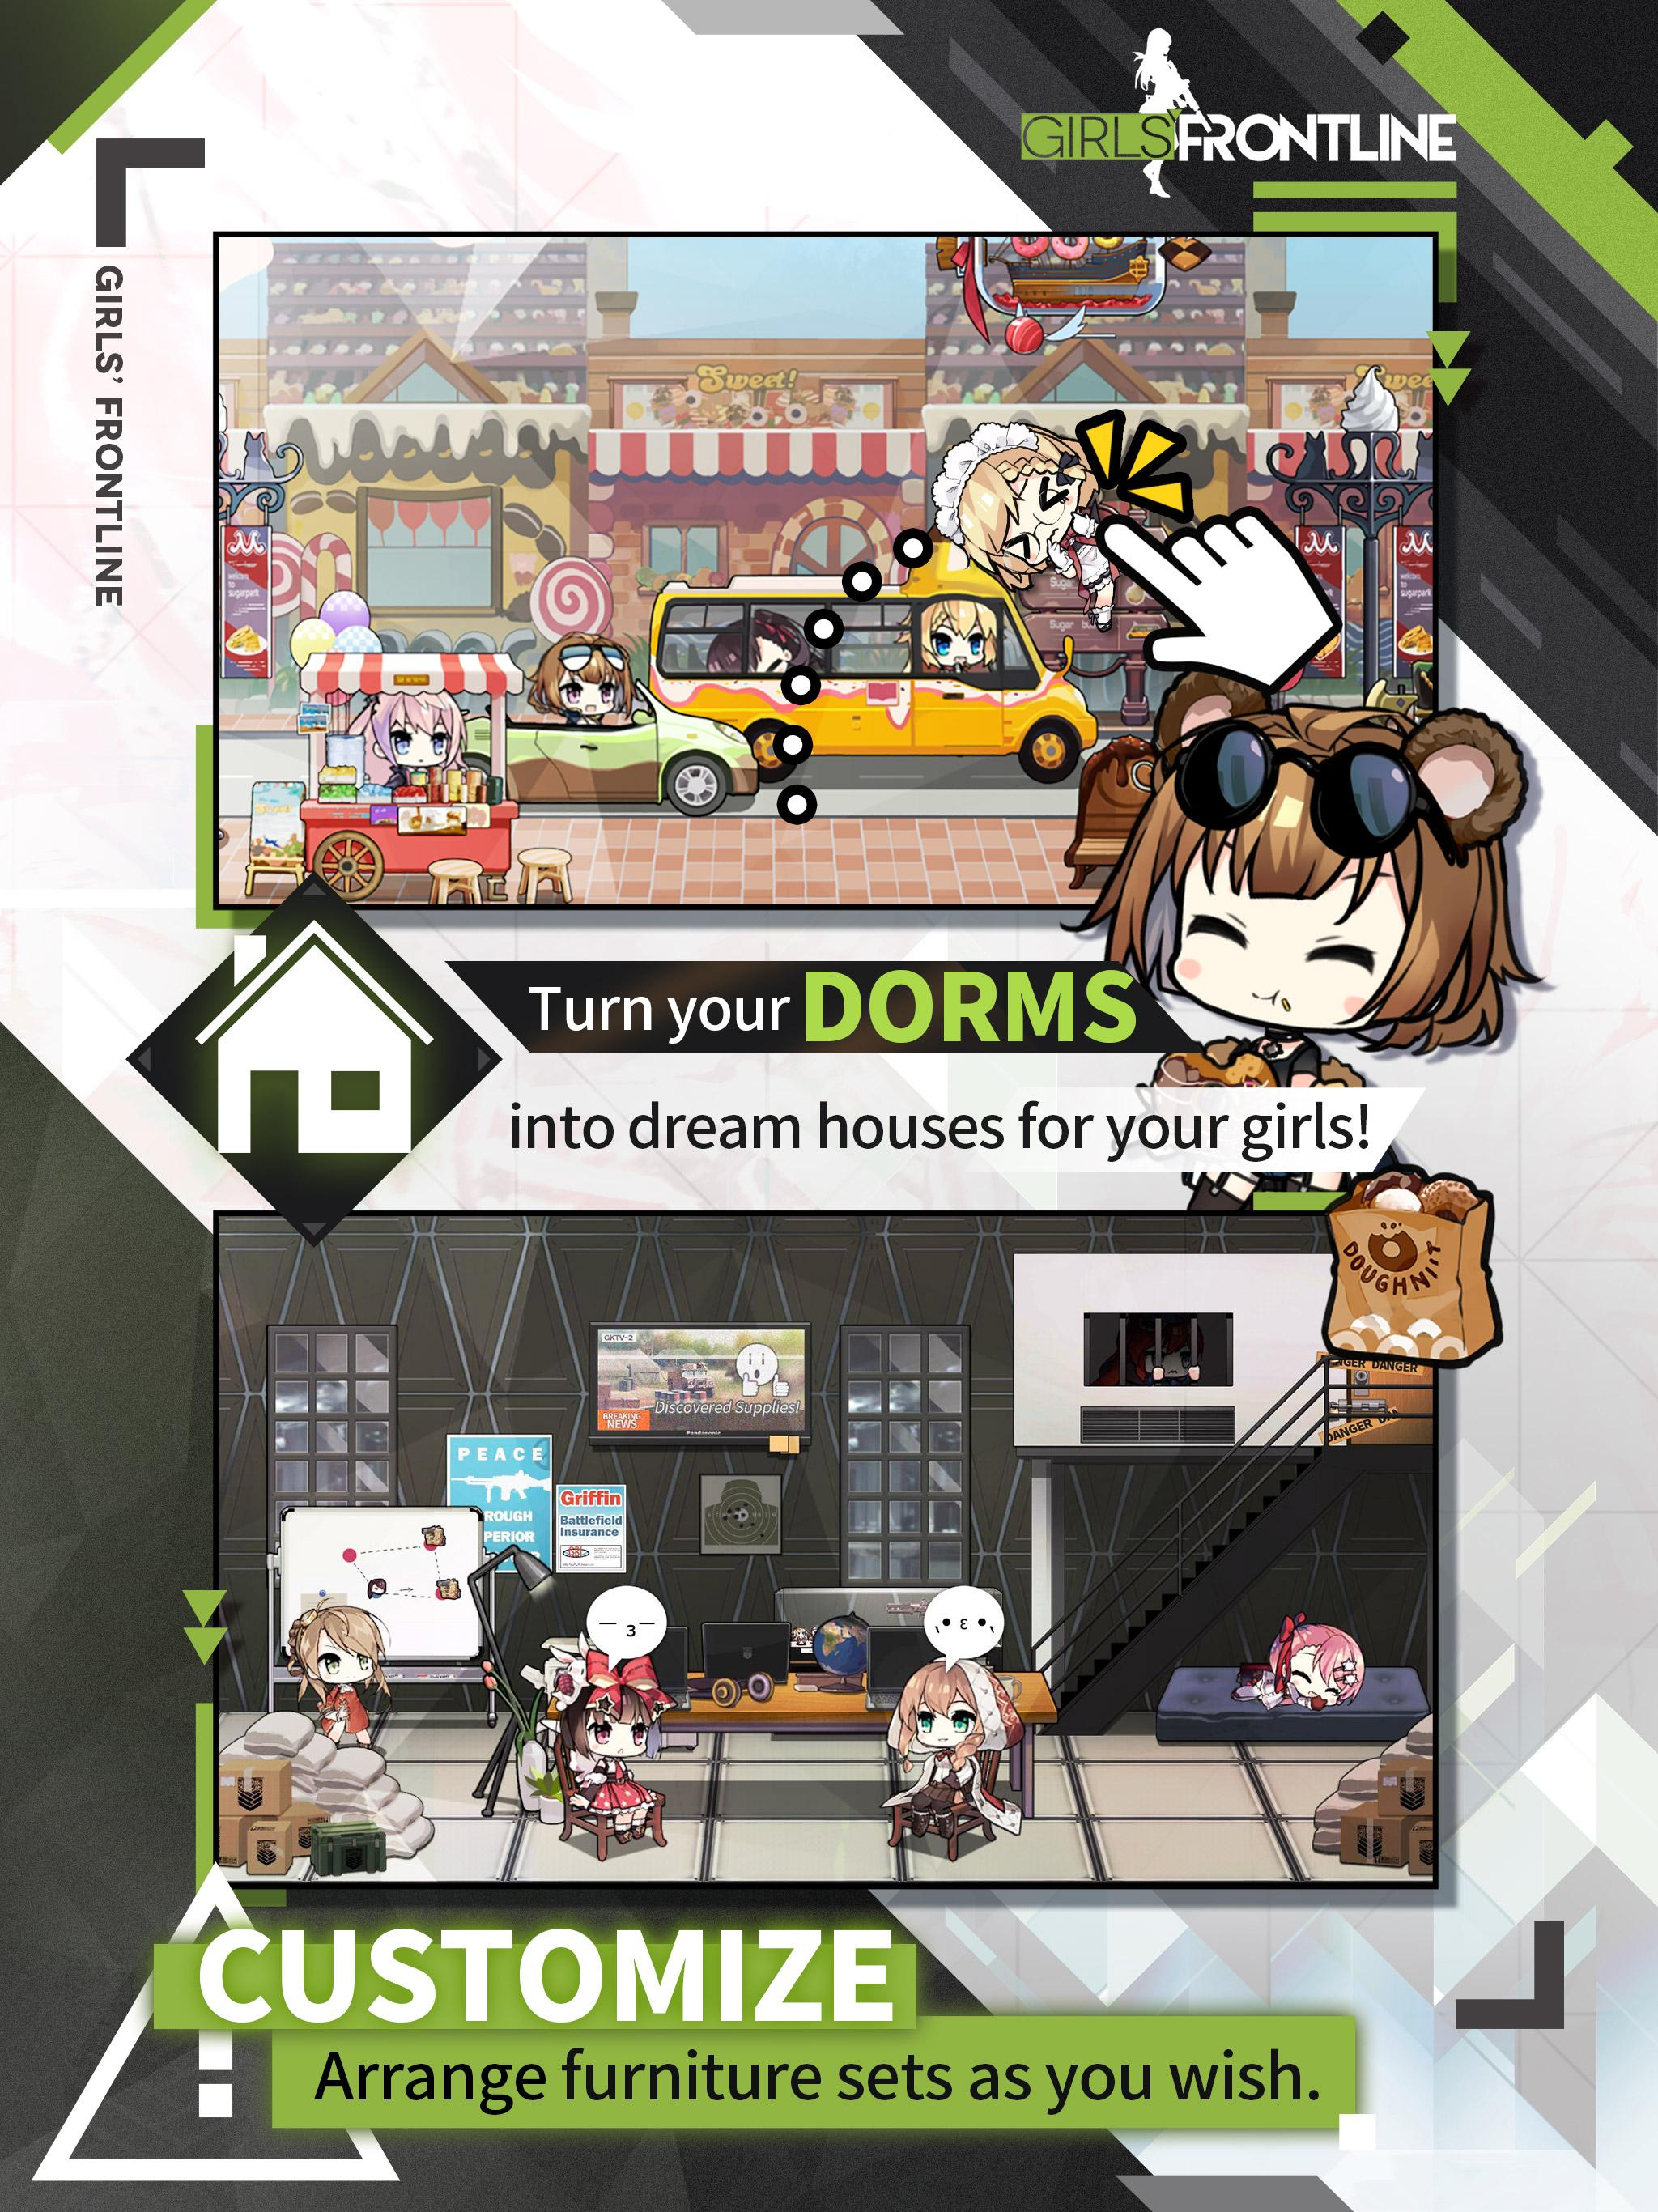 Download Girls' Frontline on PC with BlueStacks